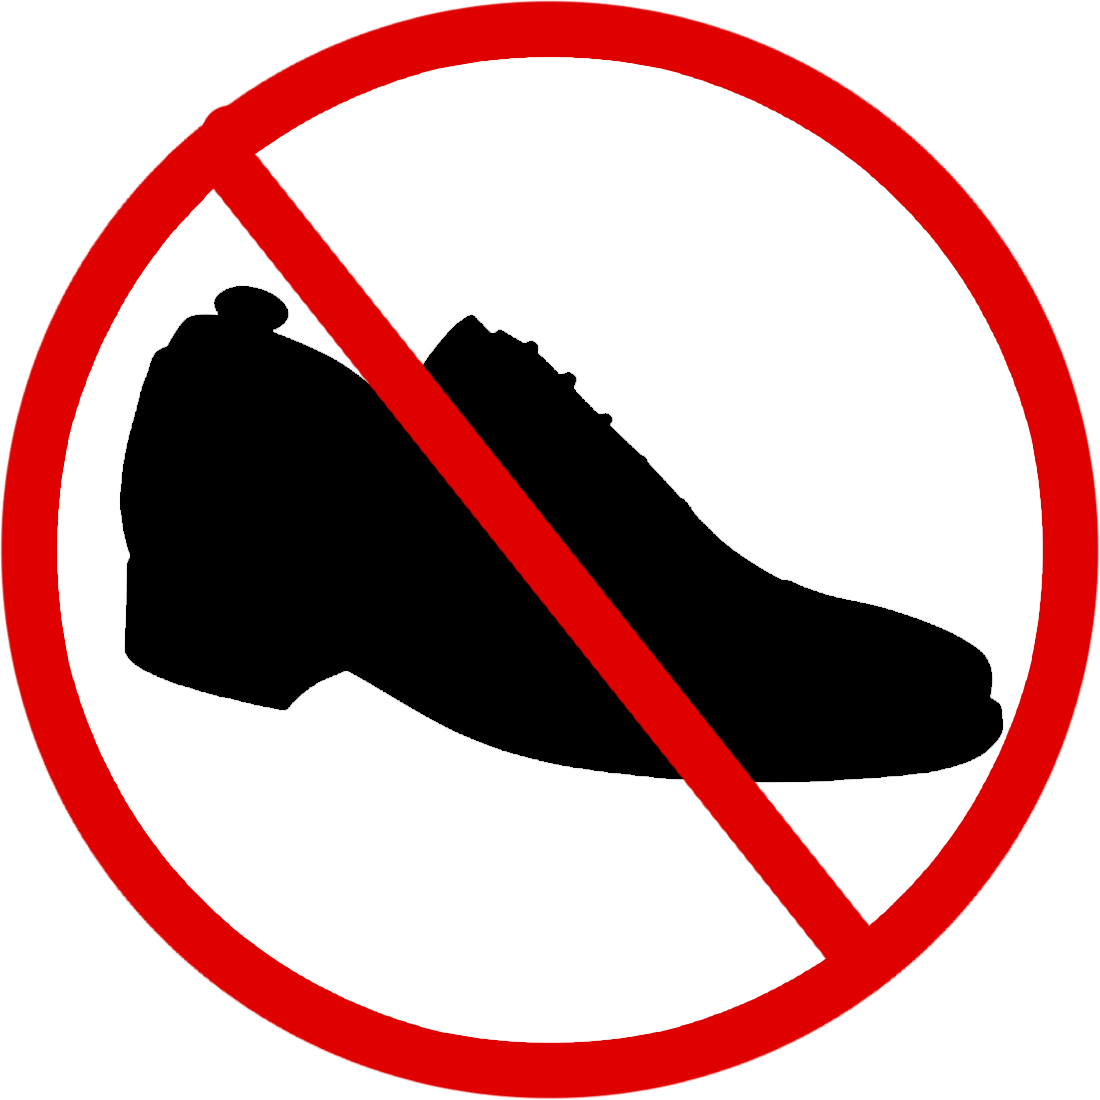 shoes allowed clipart - Shoes Off PNG - Avtocompany PNG